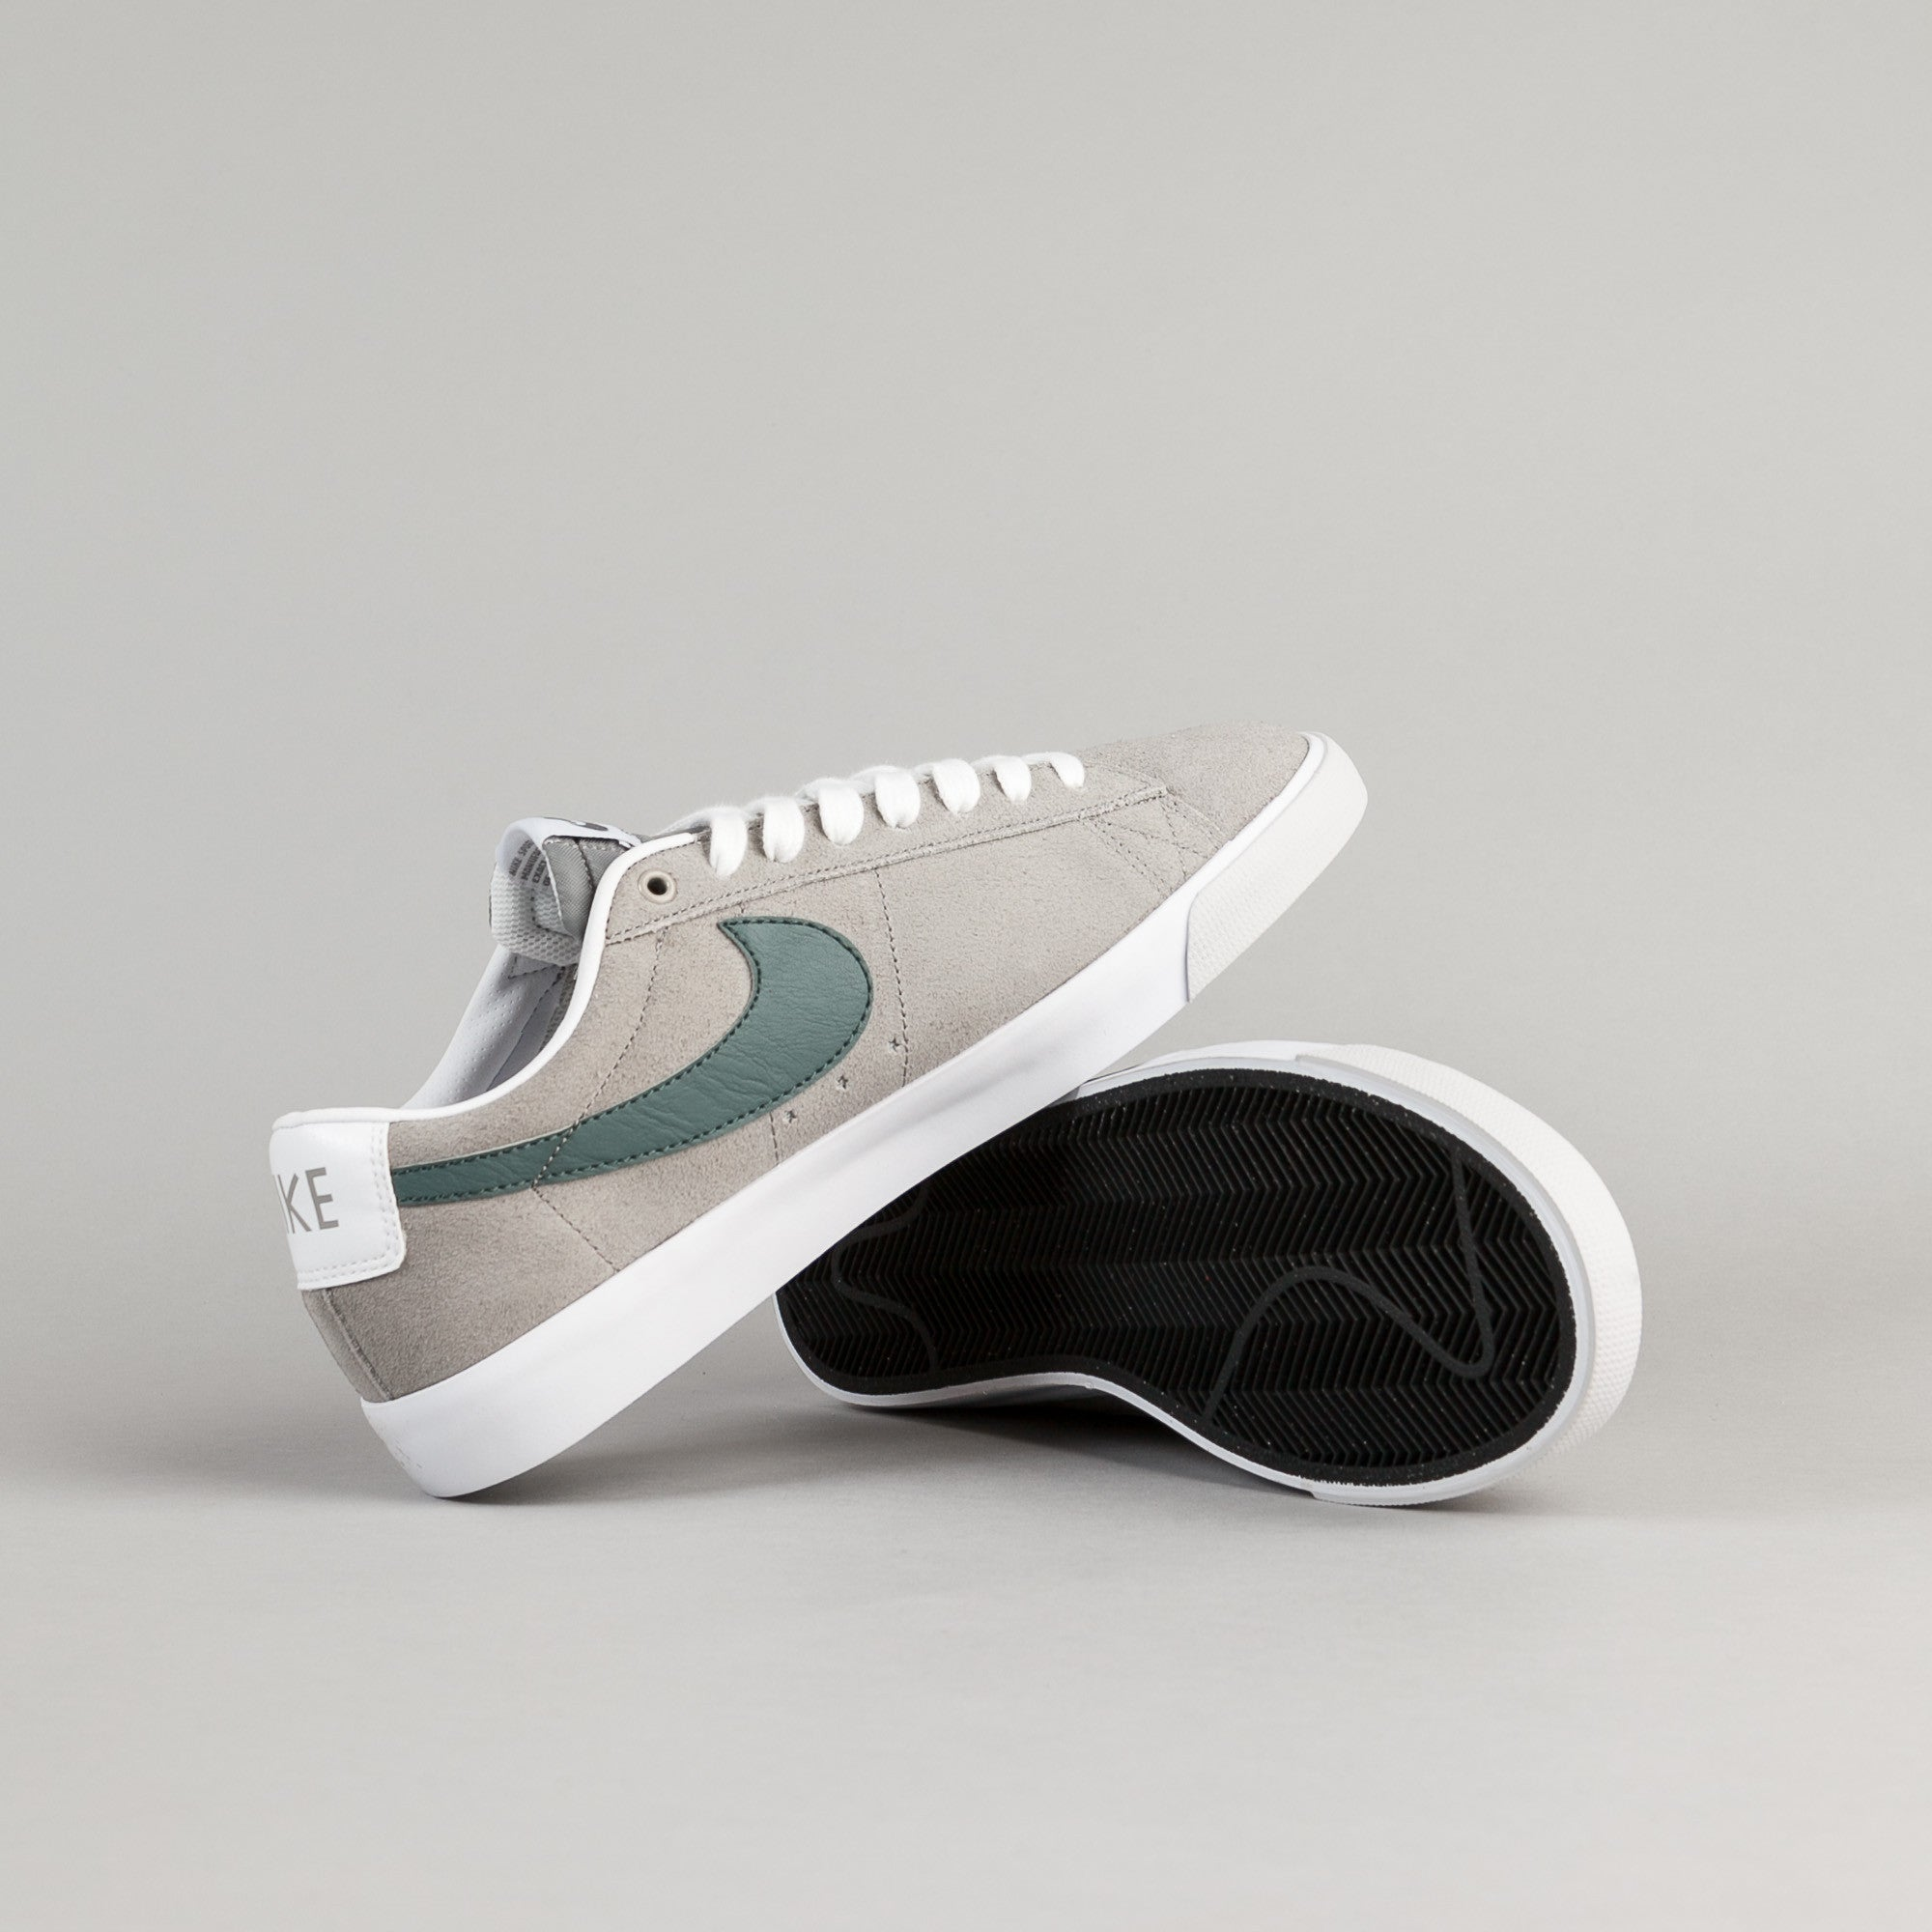 Nike SB Blazer Low GT Shoes - Dust / Hasta - White - Pure Platinum